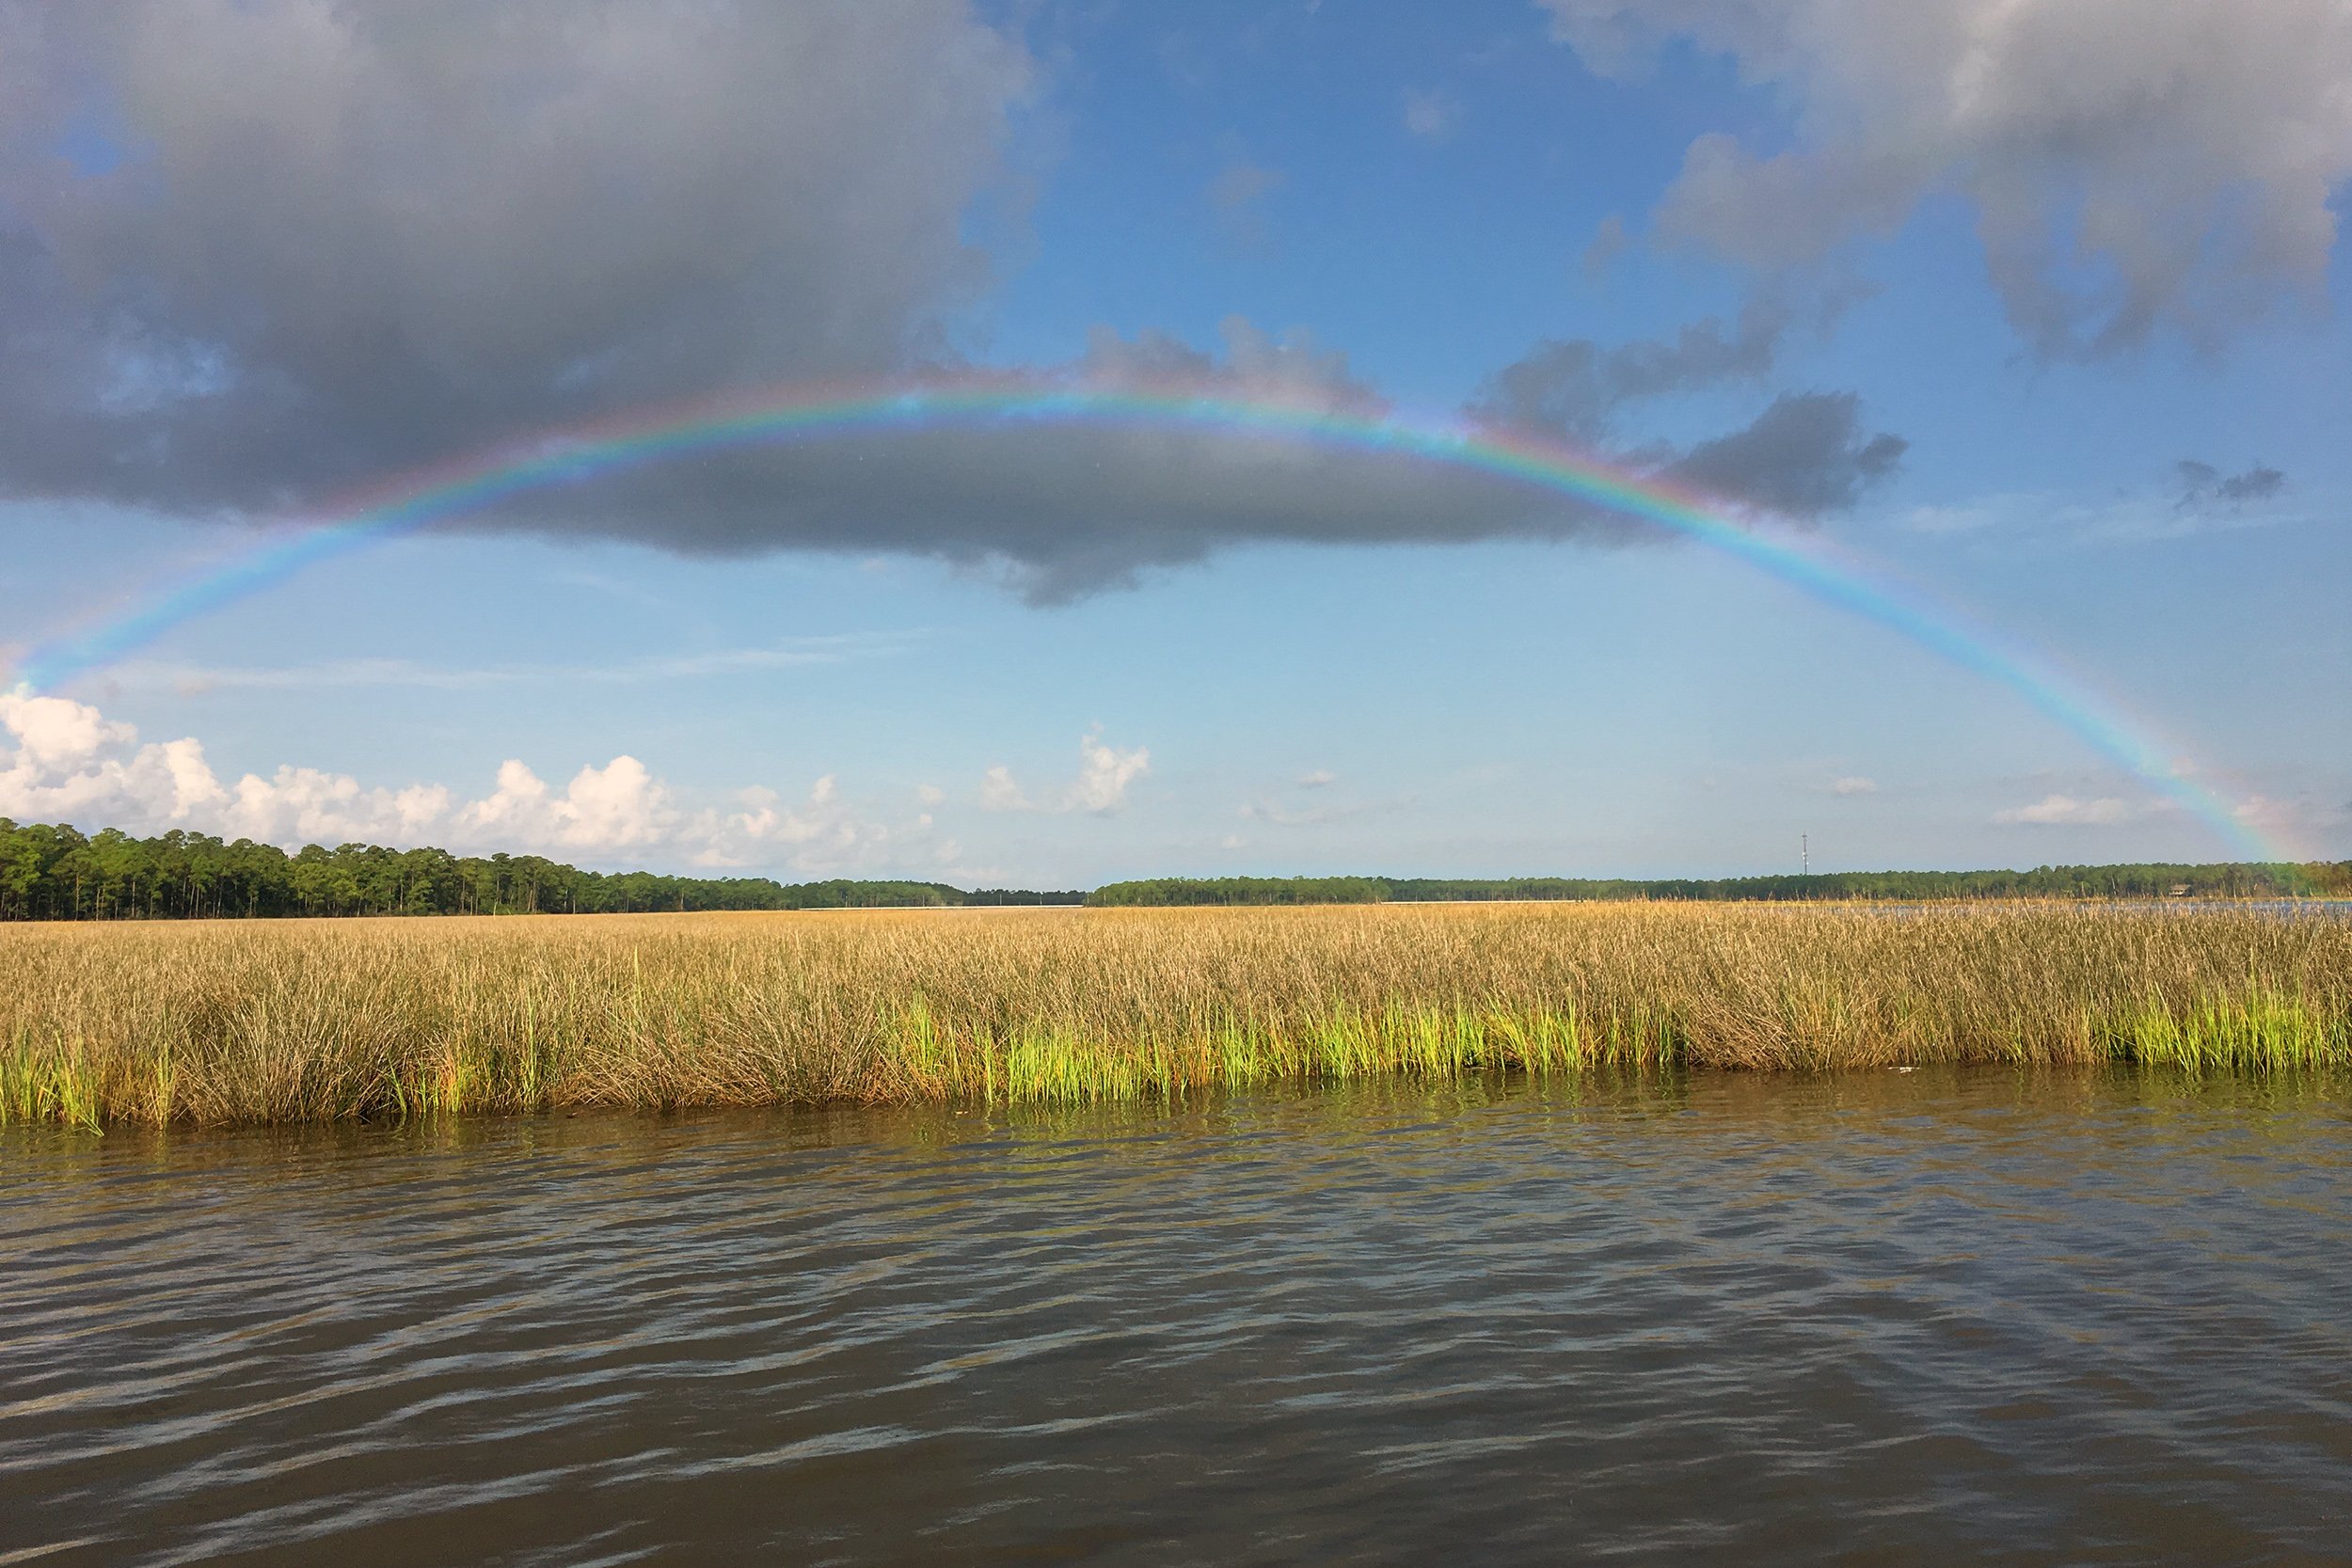 A full rainbow spread across the sky over water, marsh grass and forest.